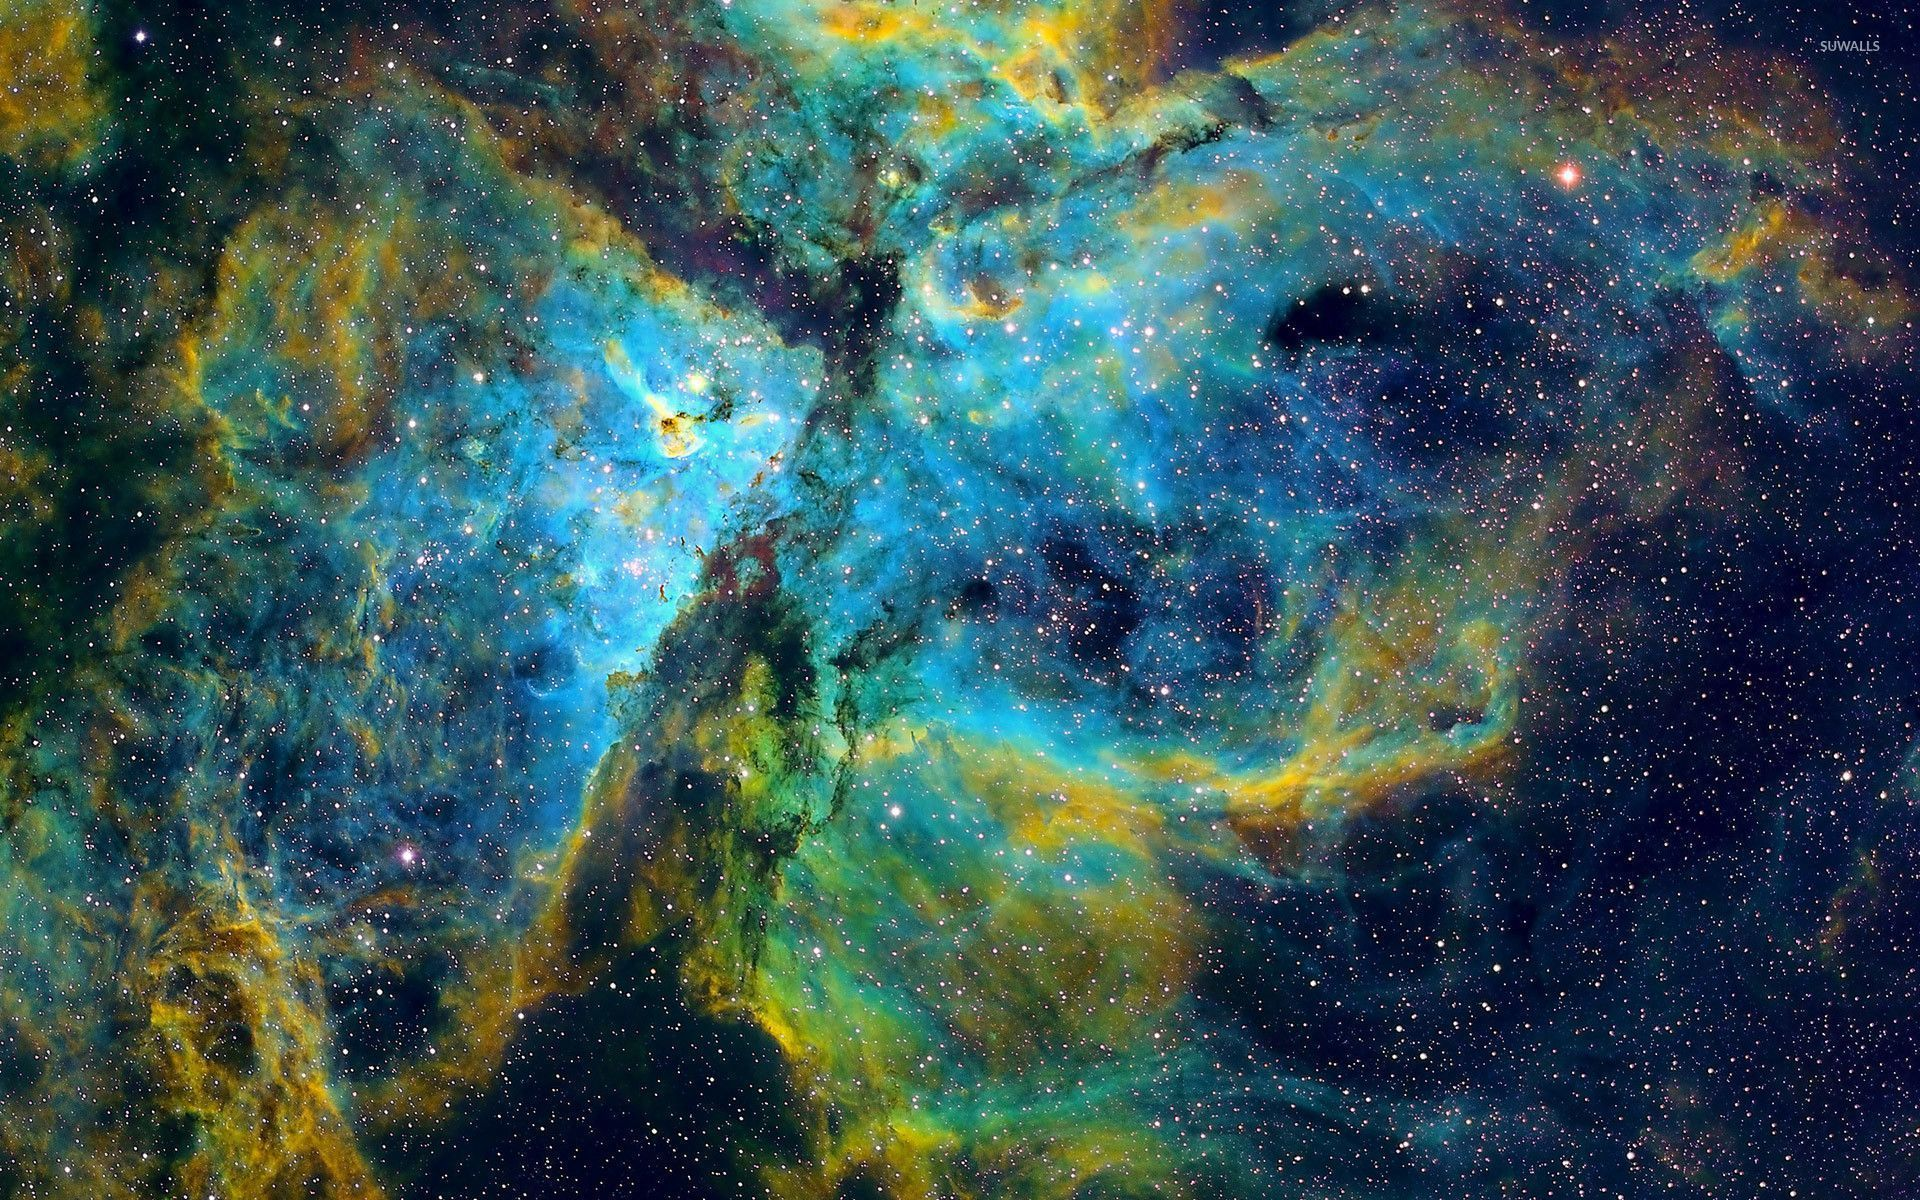 1920x1200 Beautiful Carina Nebula wallpaper - Space wallpapers - #53654